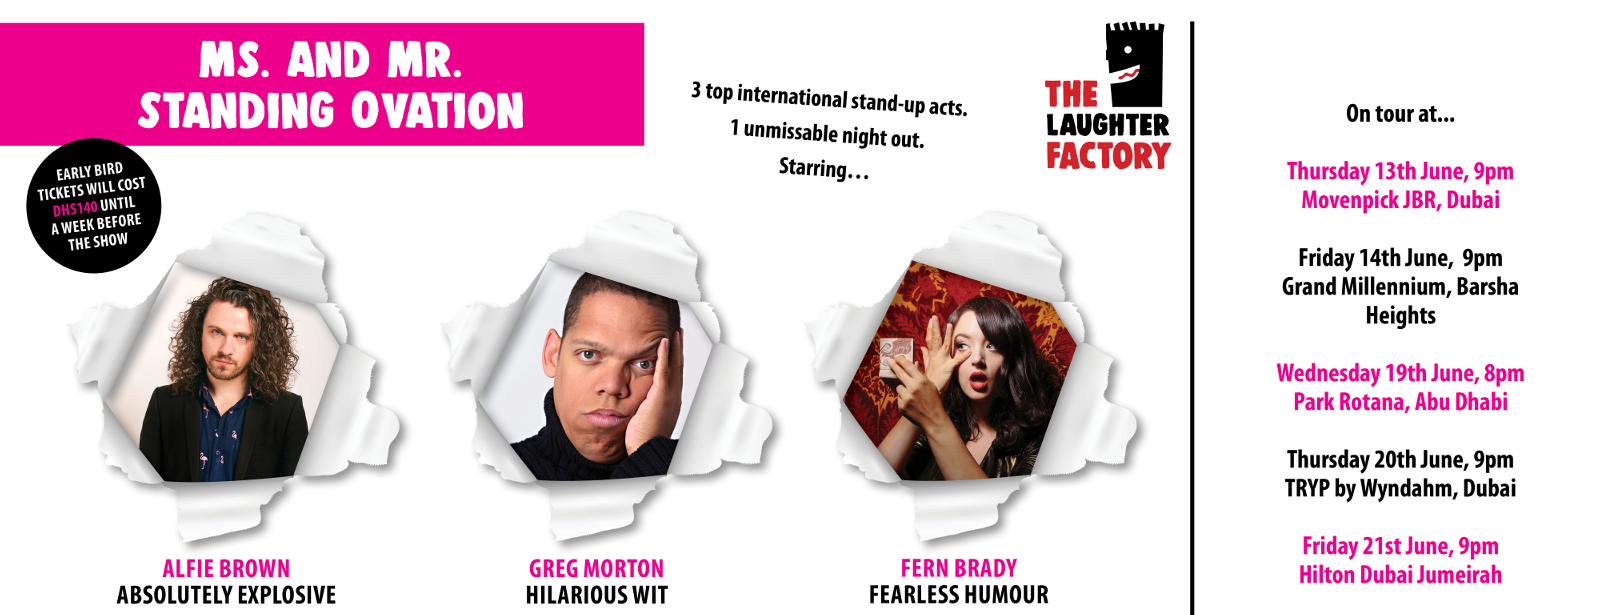 The Laughter Factory June 2019 w/ Alfie Brown, Fern Brady & Greg Morton